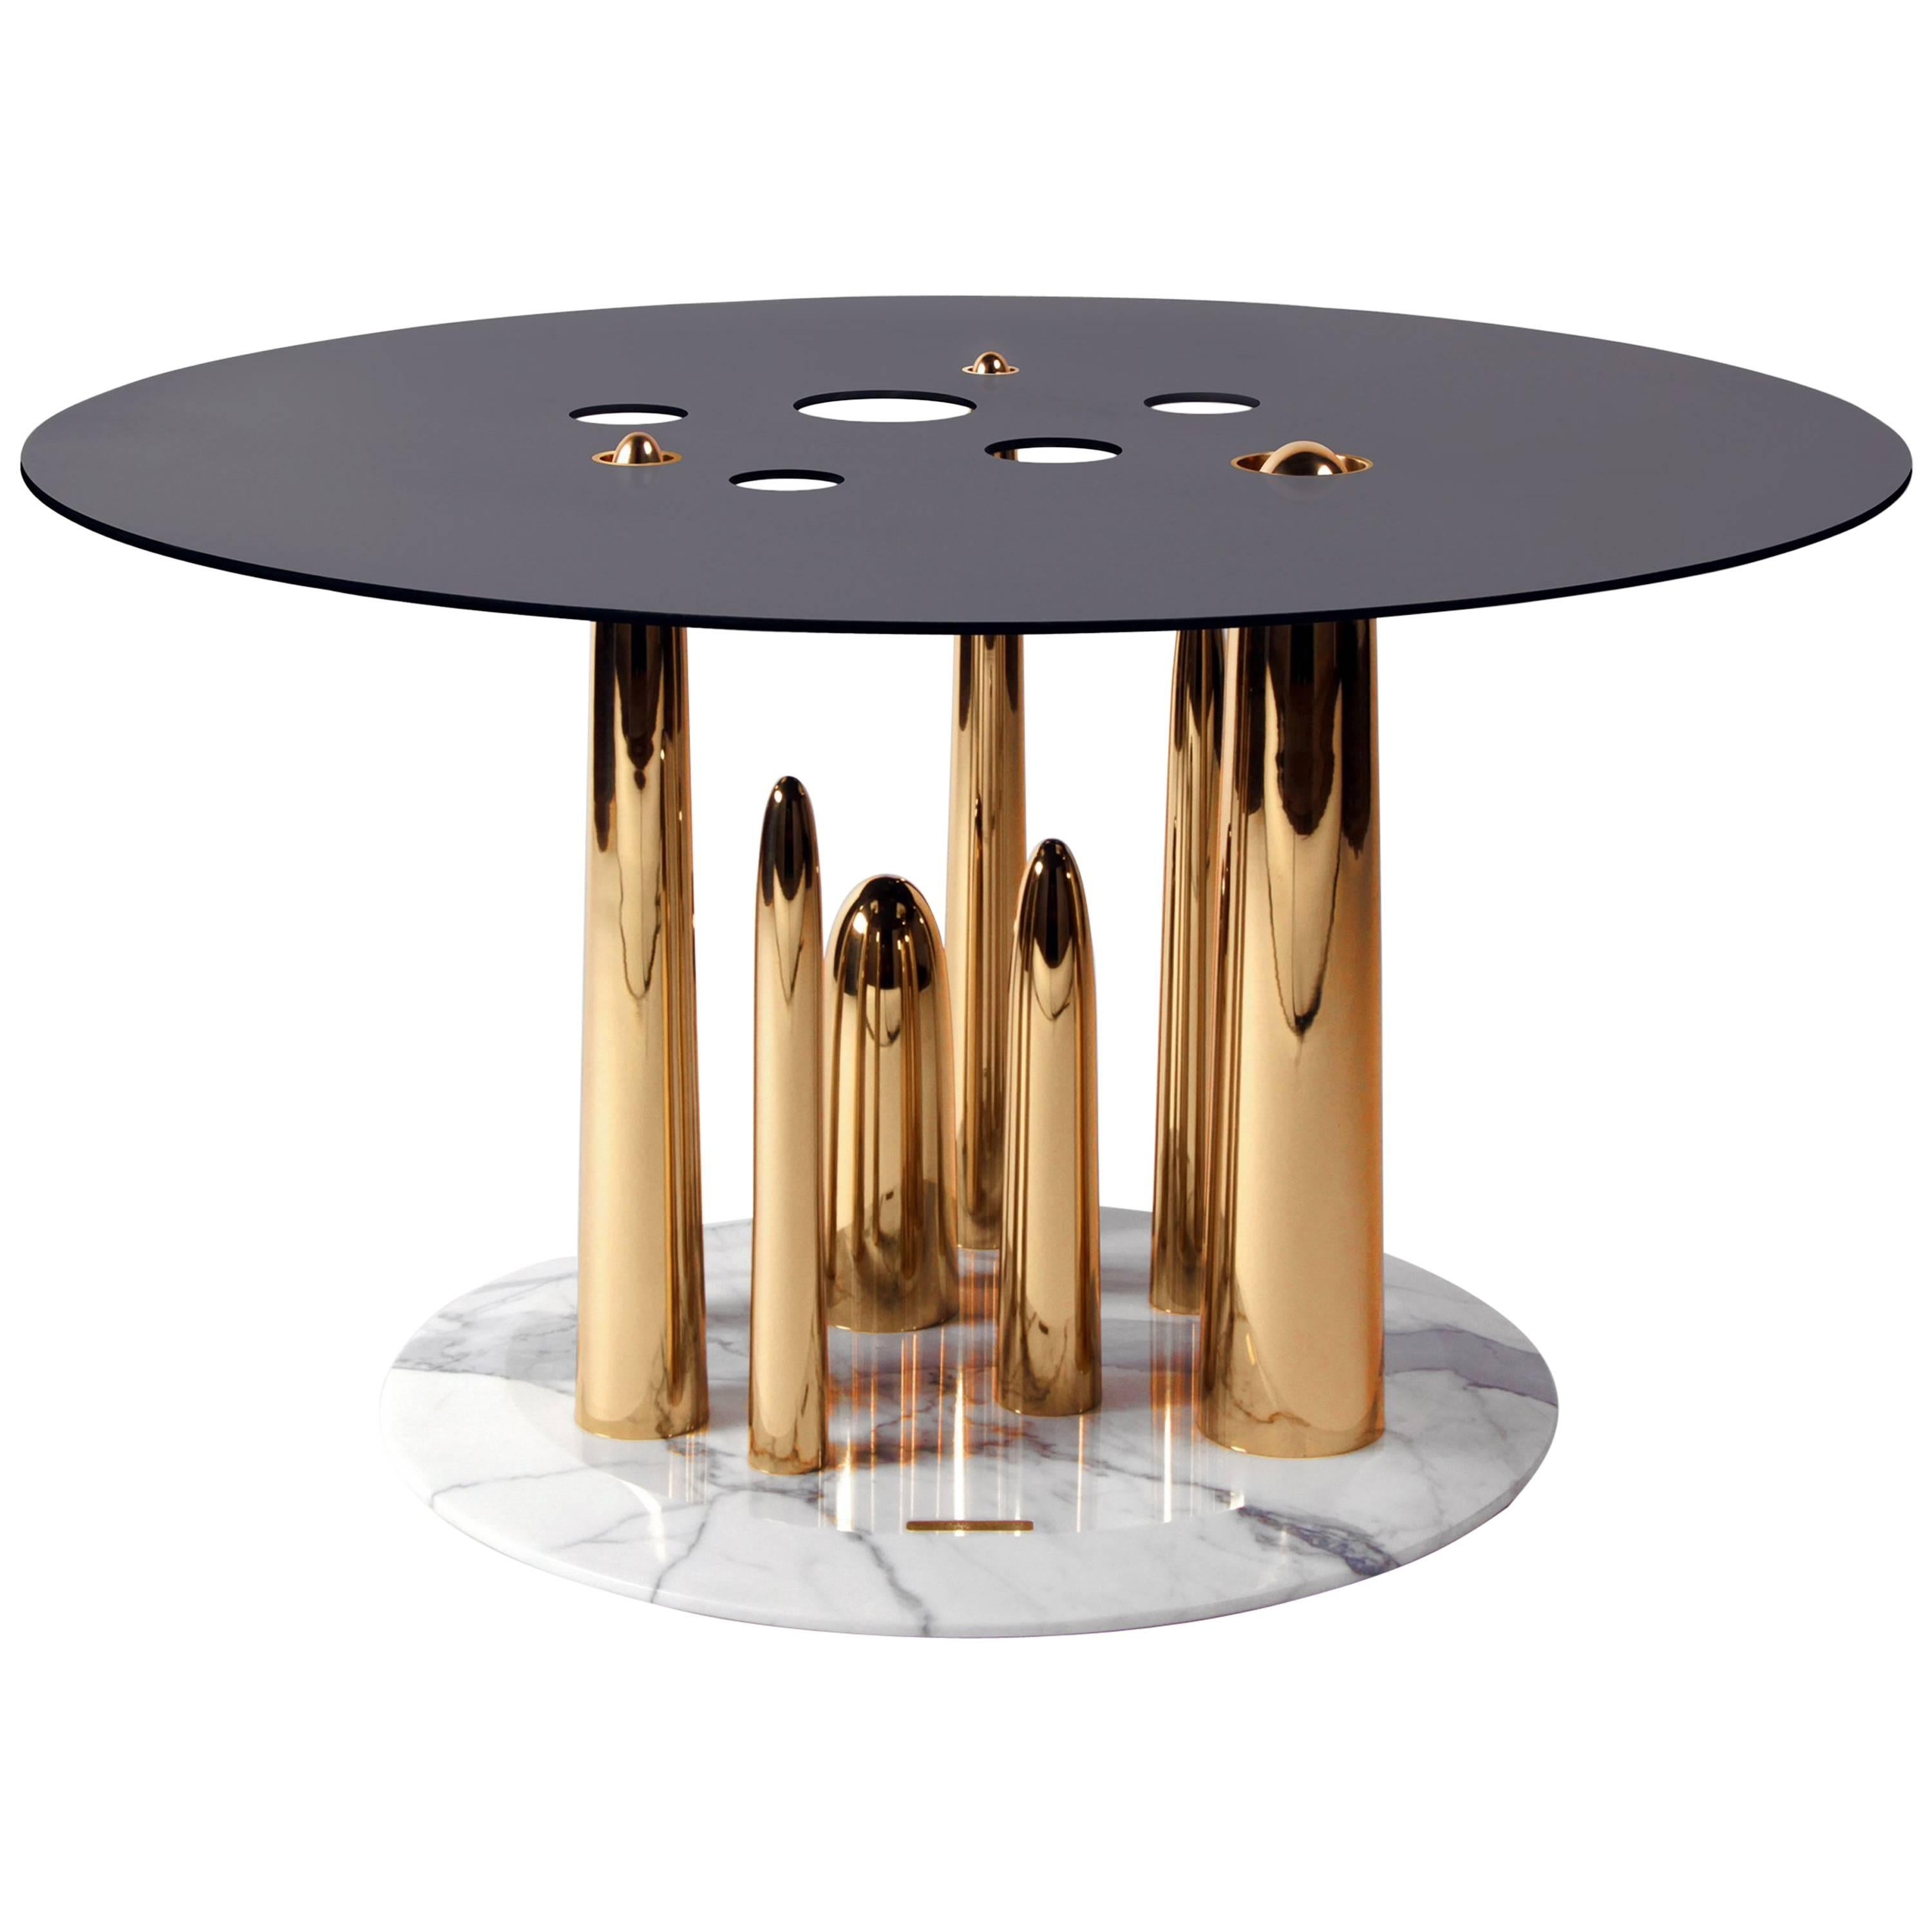 Contemporary Coffee Table or Side Table in Marble, Brass, and Steel